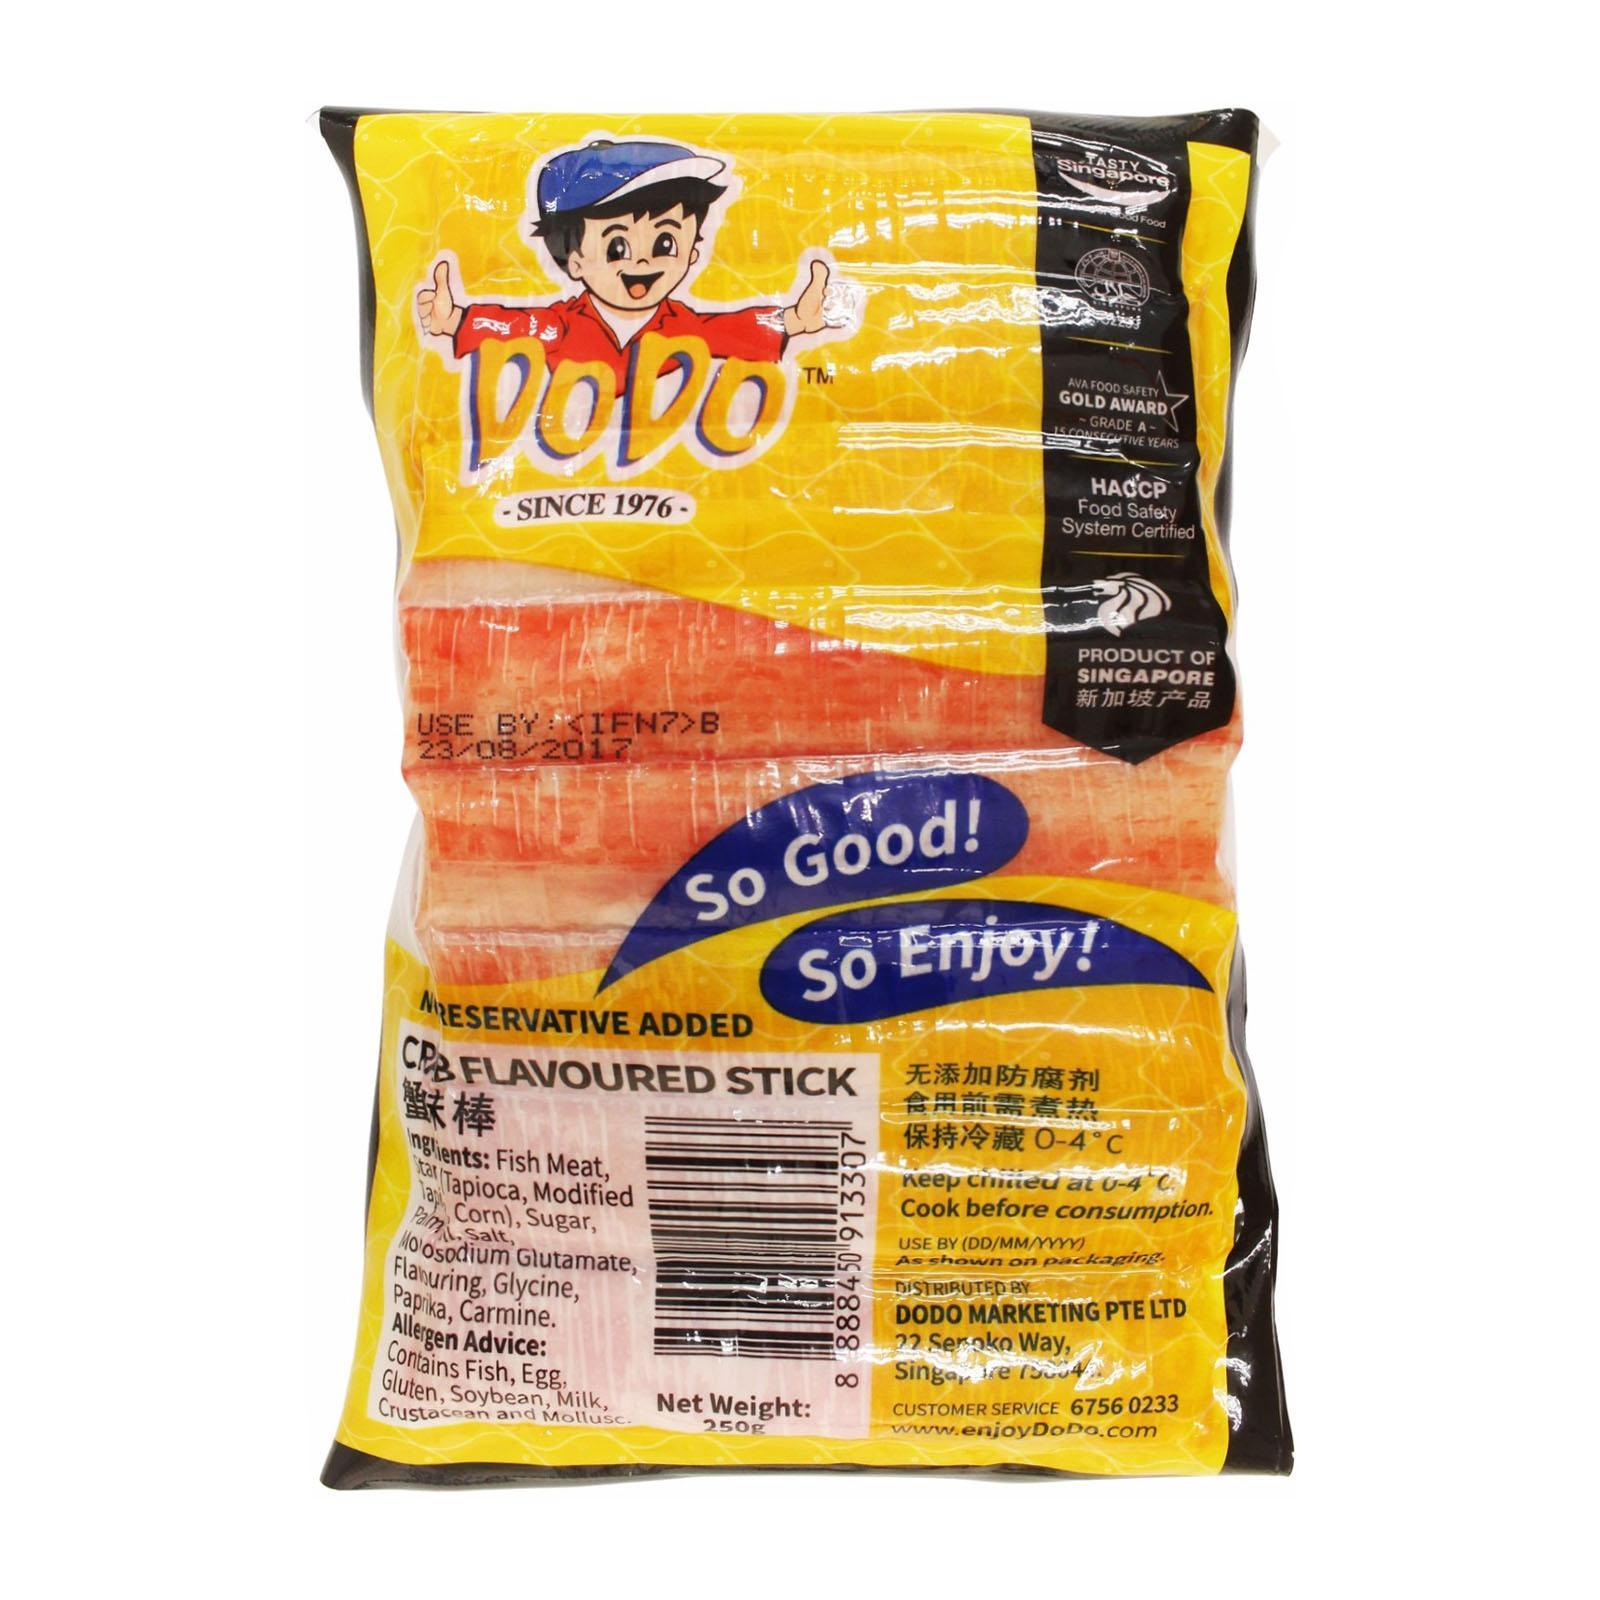 DoDo Crab Flavored Sticks - Chilled